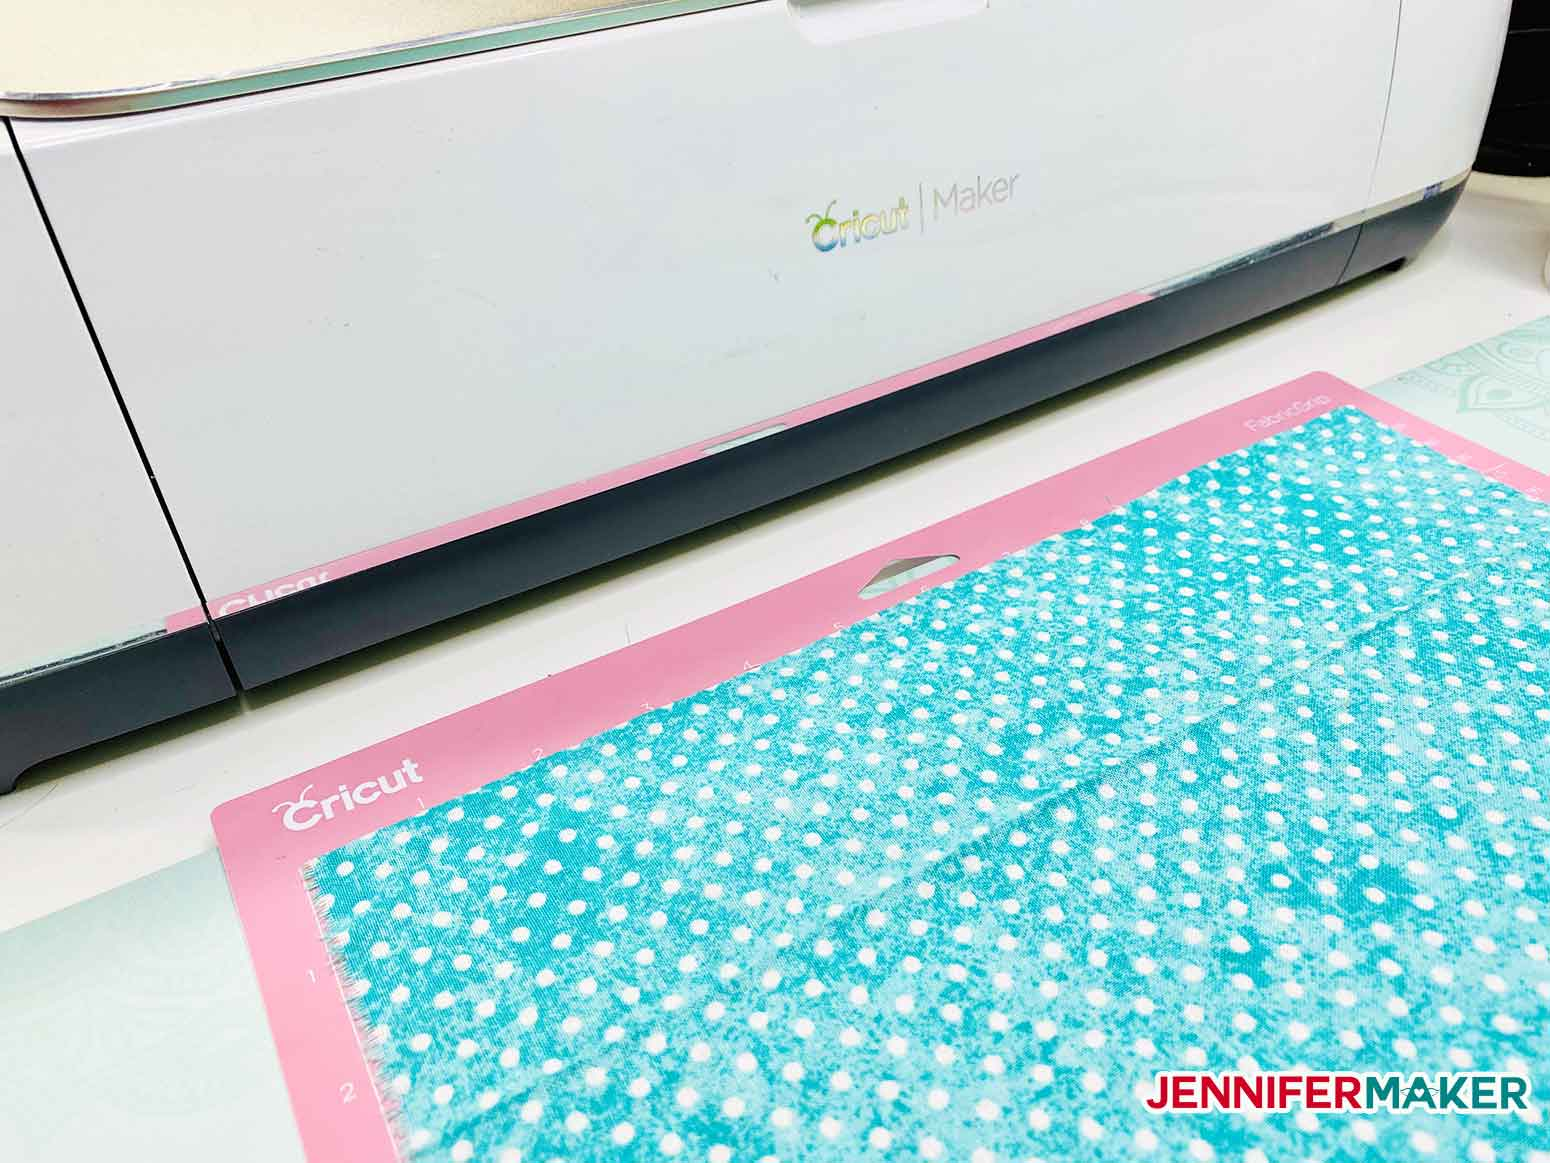 Cutting cotton on a pink FabricGrip mat with a Cricut Maker to make a no-sew face mask